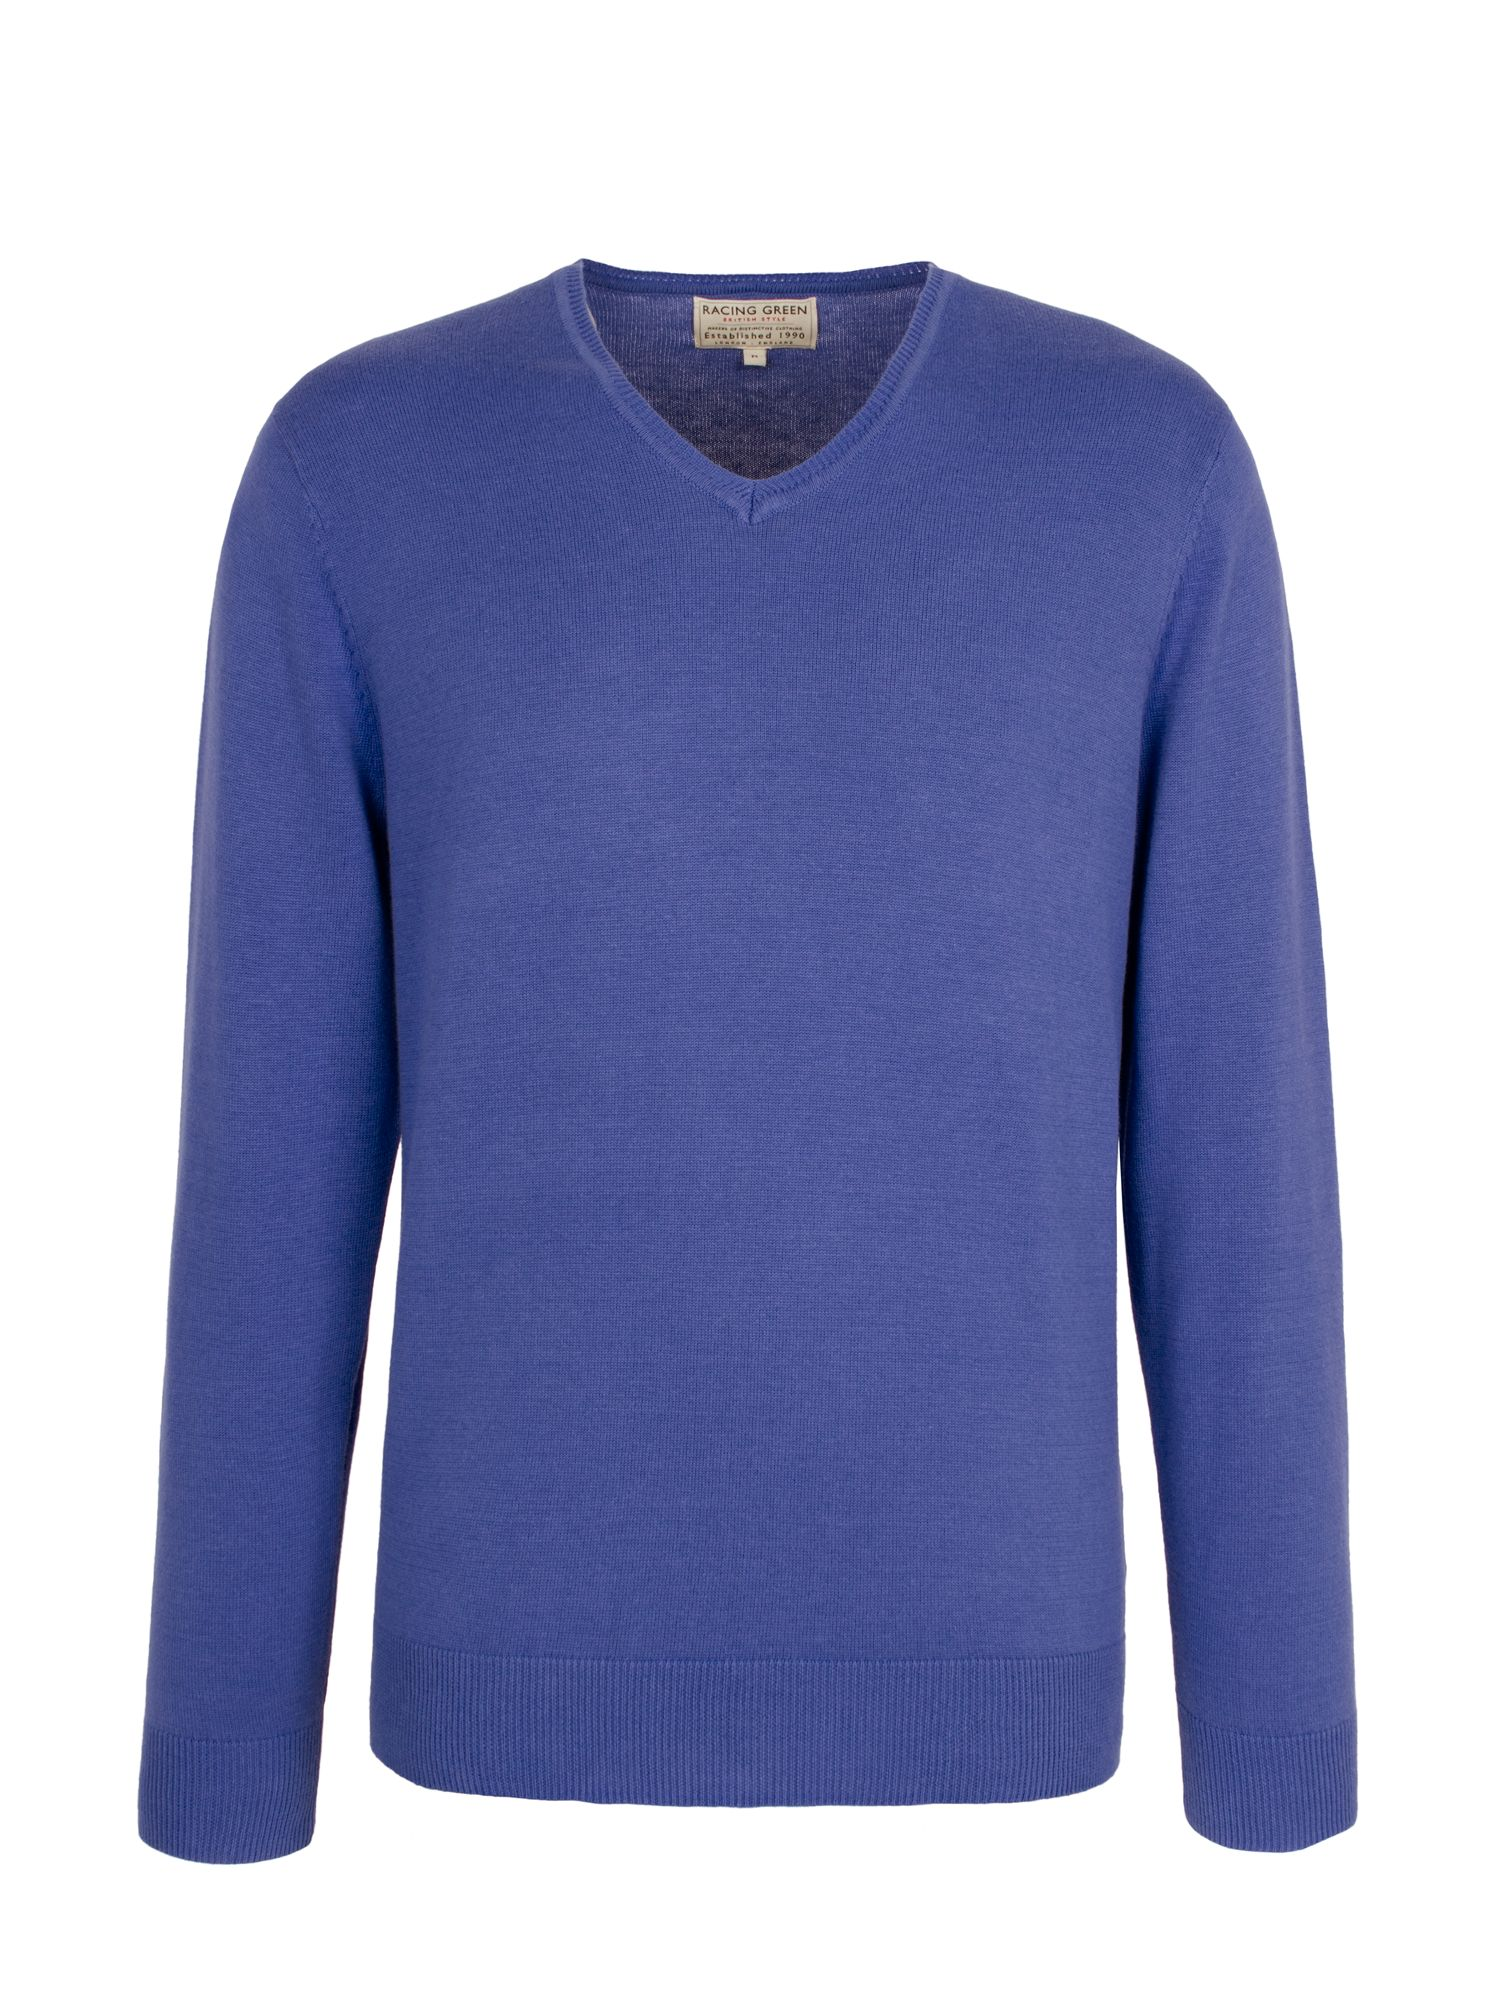 Henley v neck knit shirt